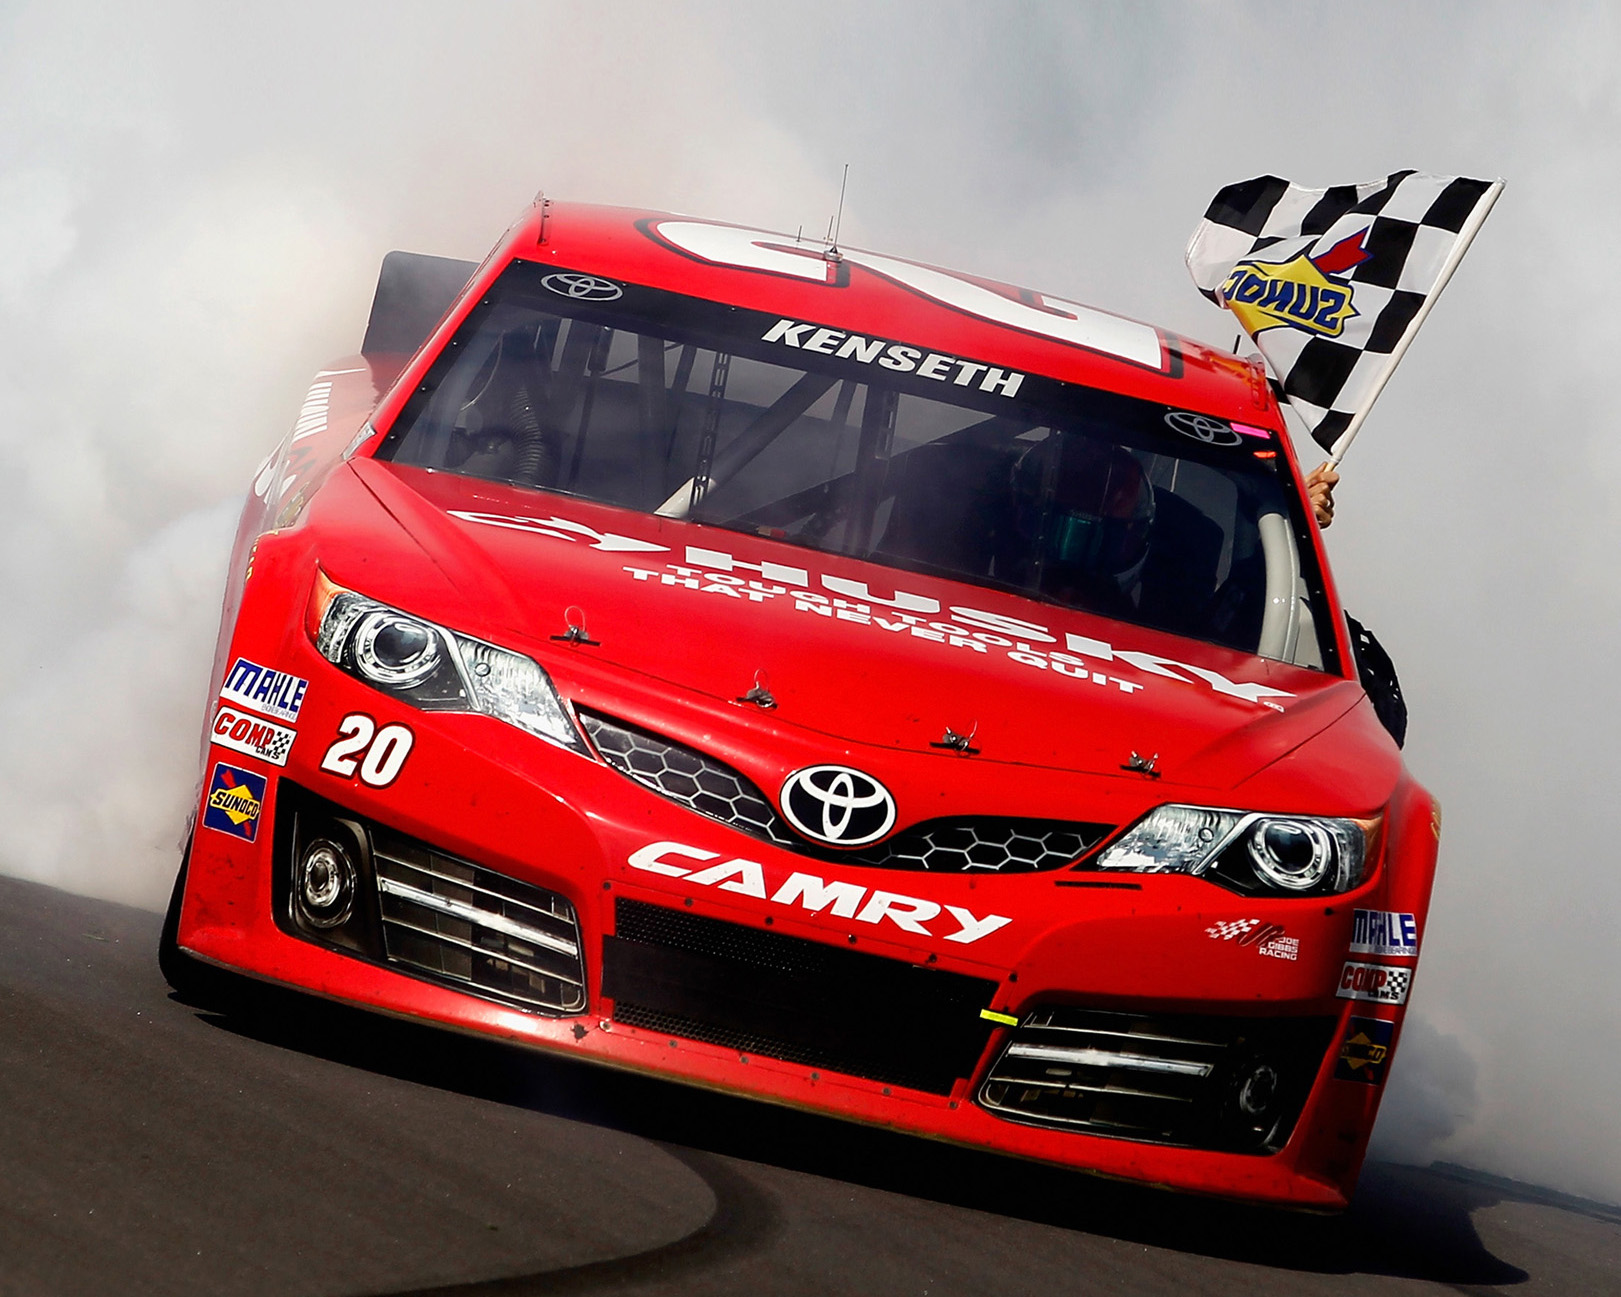 2013 Camry Cup Car, First Race Win